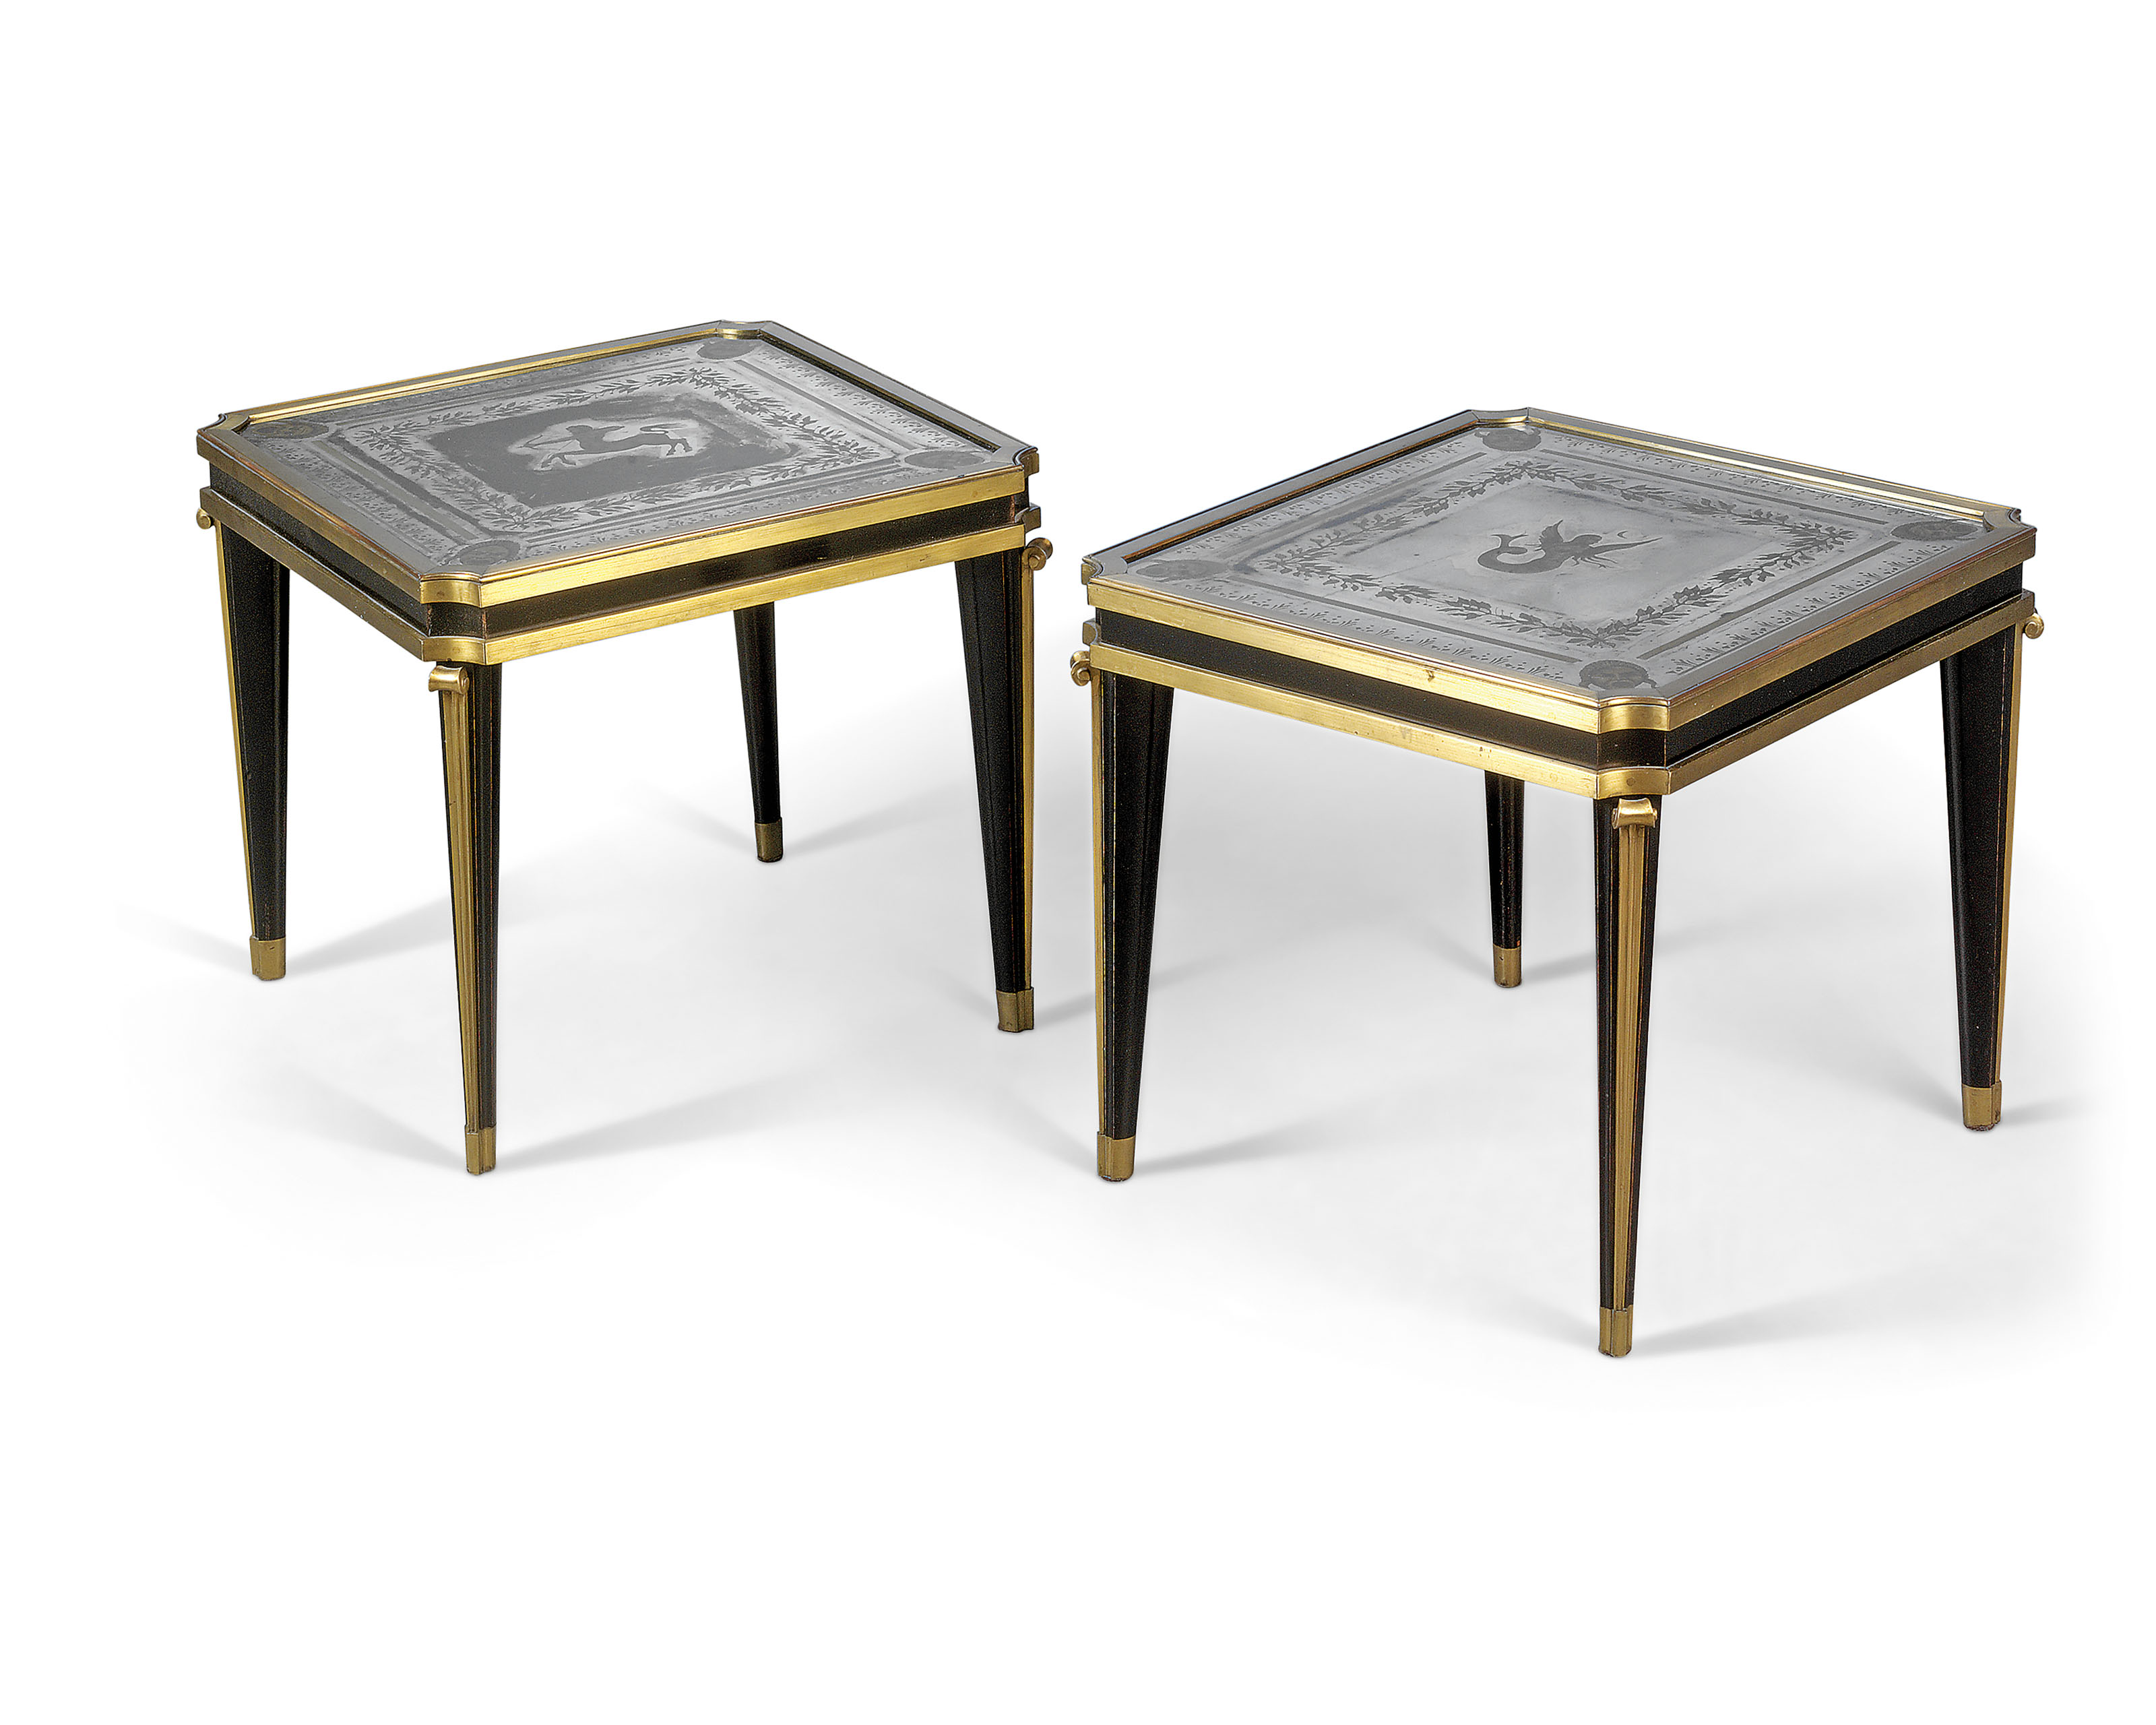 A PAIR OF GILT-BRONZE, EBONISED AND VERRE EGLOMISE OCCASIONAL TABLES